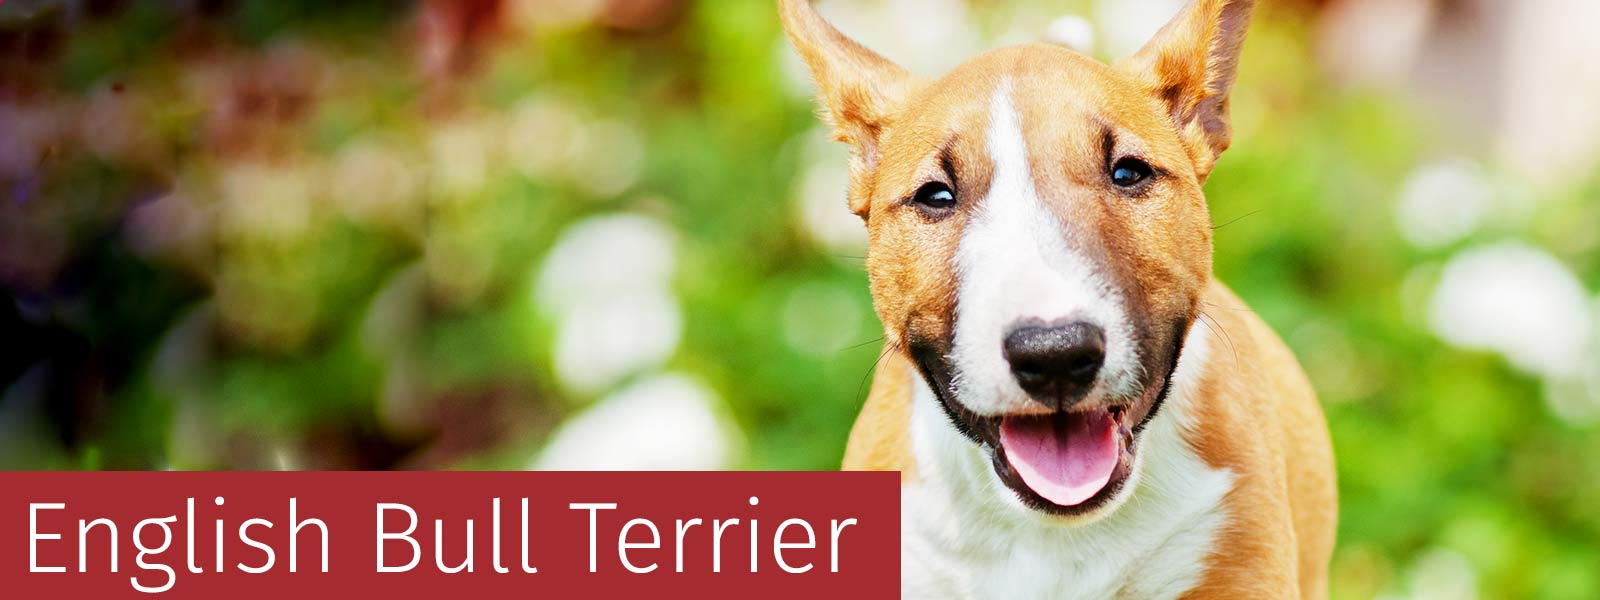 English Bull Terrier Gifts